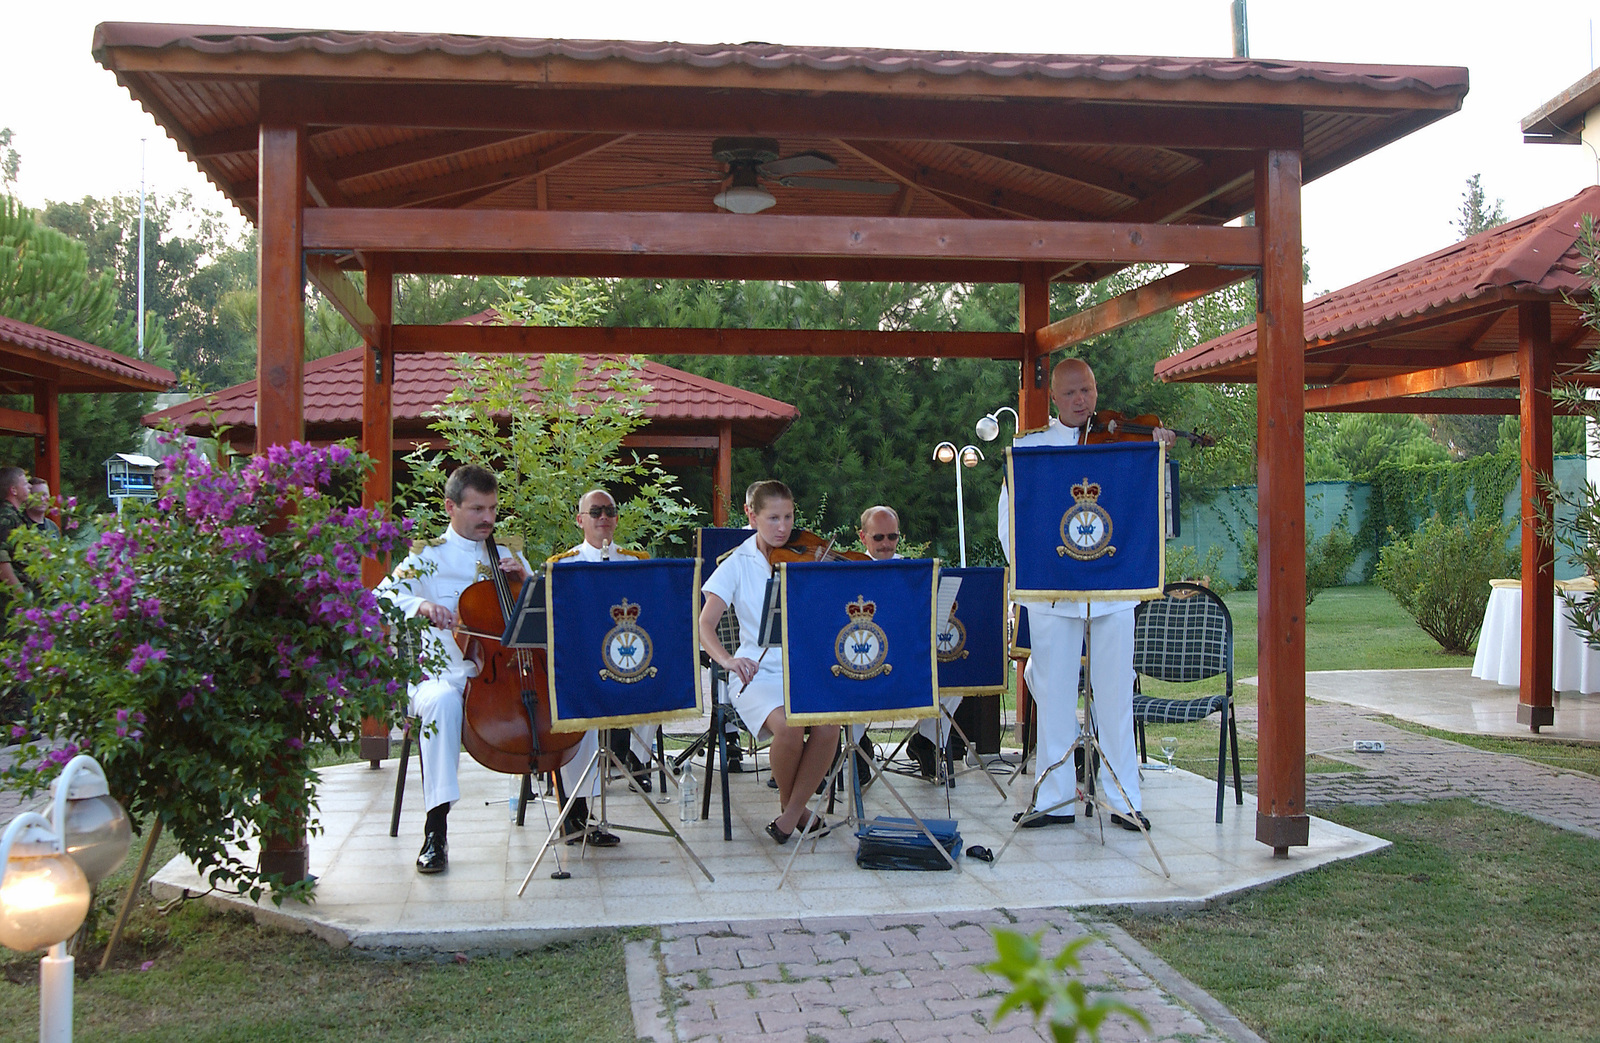 The Salon Orchestra of the Royal Air Force (RAF) plays at the Battle of Britain Observance held at Incirlik Air Base (AB), Turkey, during Operation NORTHERN WATCH